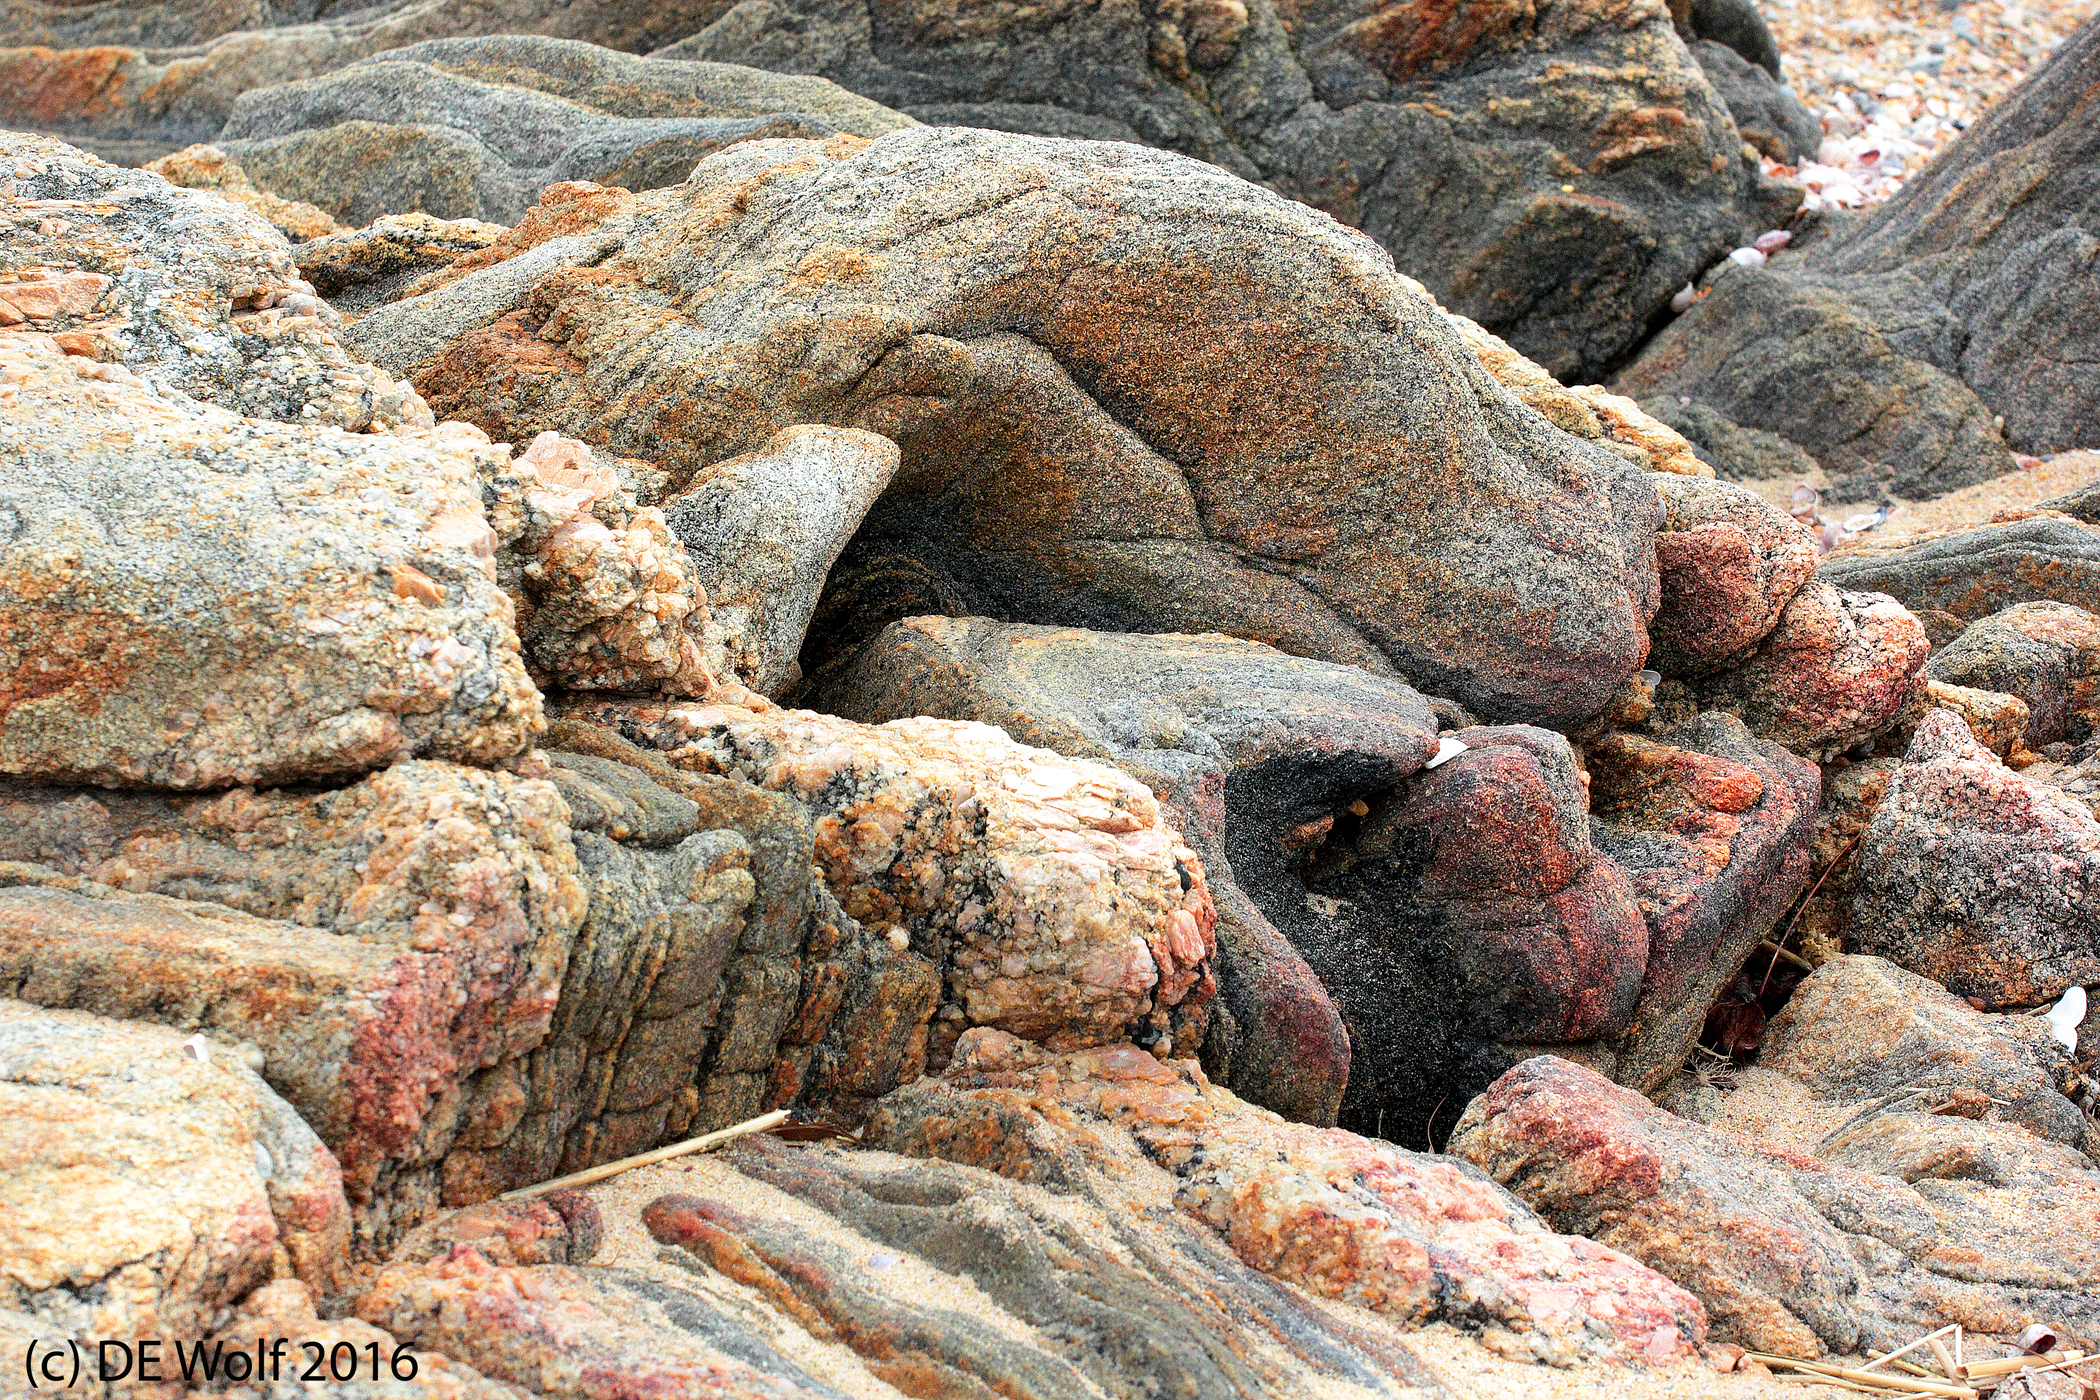 Figure 1 - Granites on the beach, Madison, CT. (c) DE Wolf 2016.